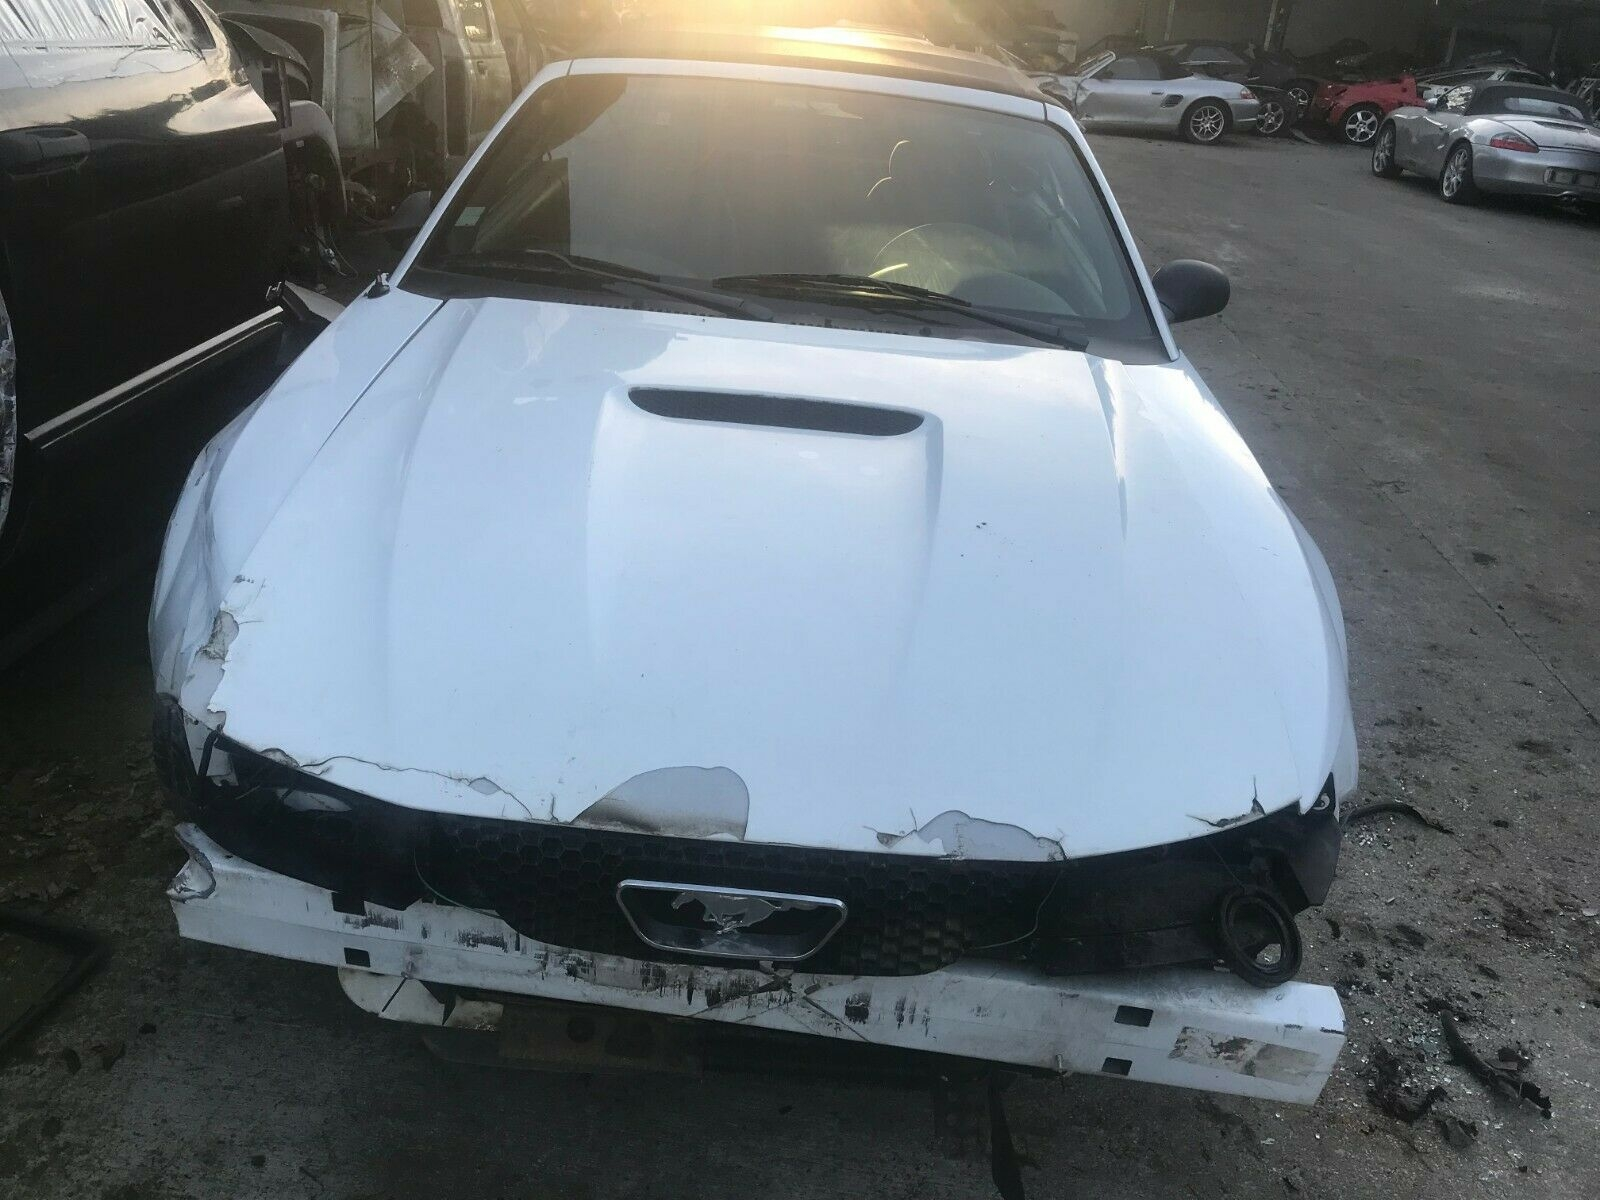 Ford mustang sn95 hood ford mustang bonnet 99 04 bonnet scoop mustang x843obk